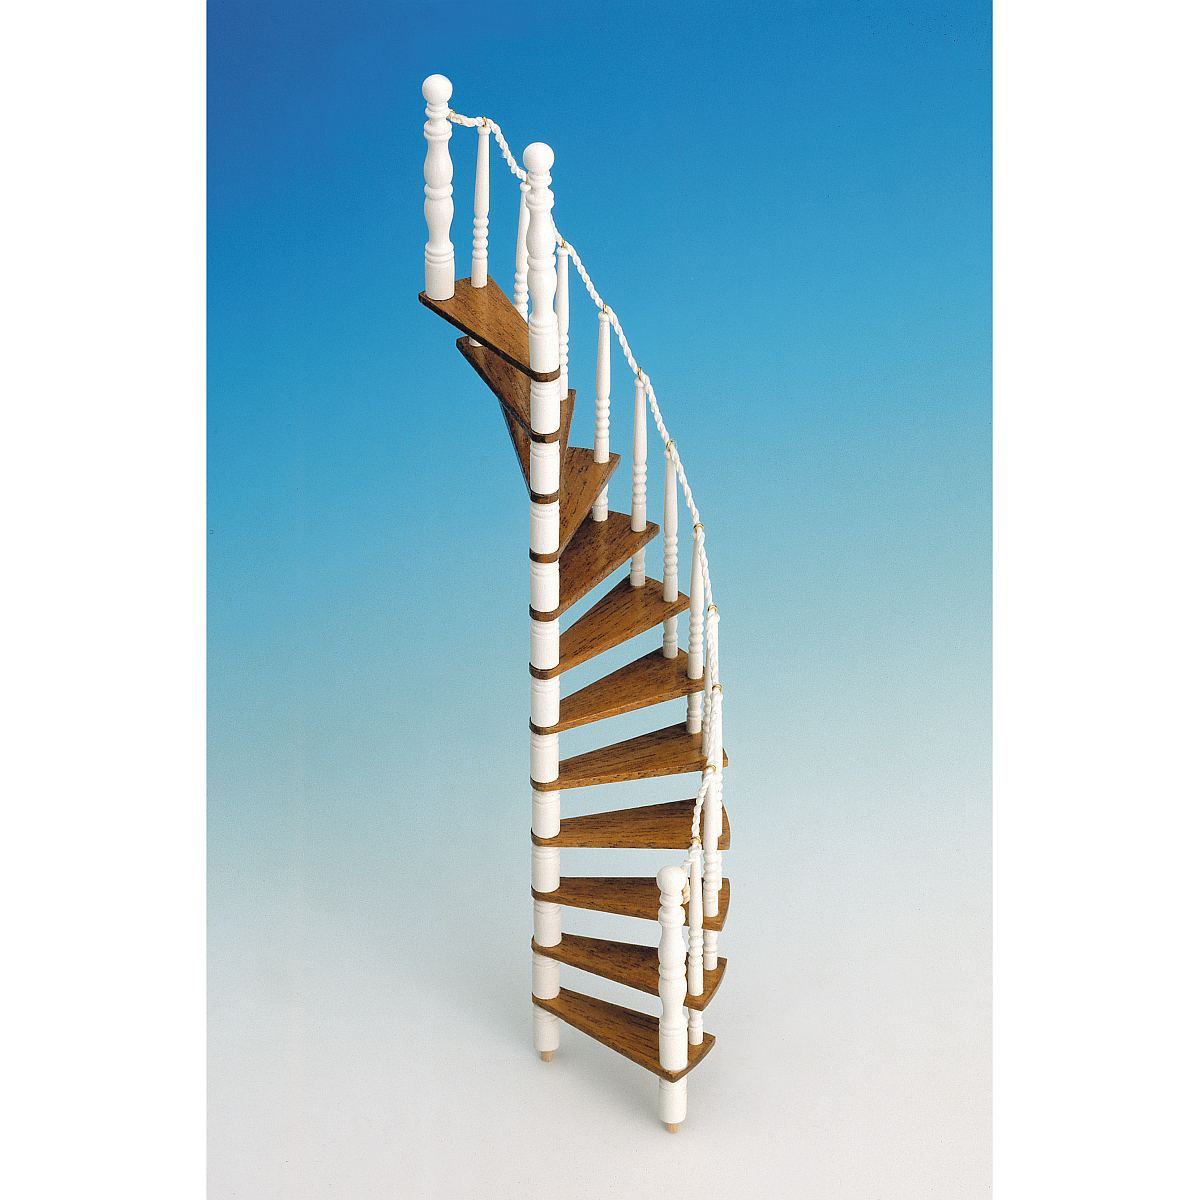 Spiral staircase - 280 mm